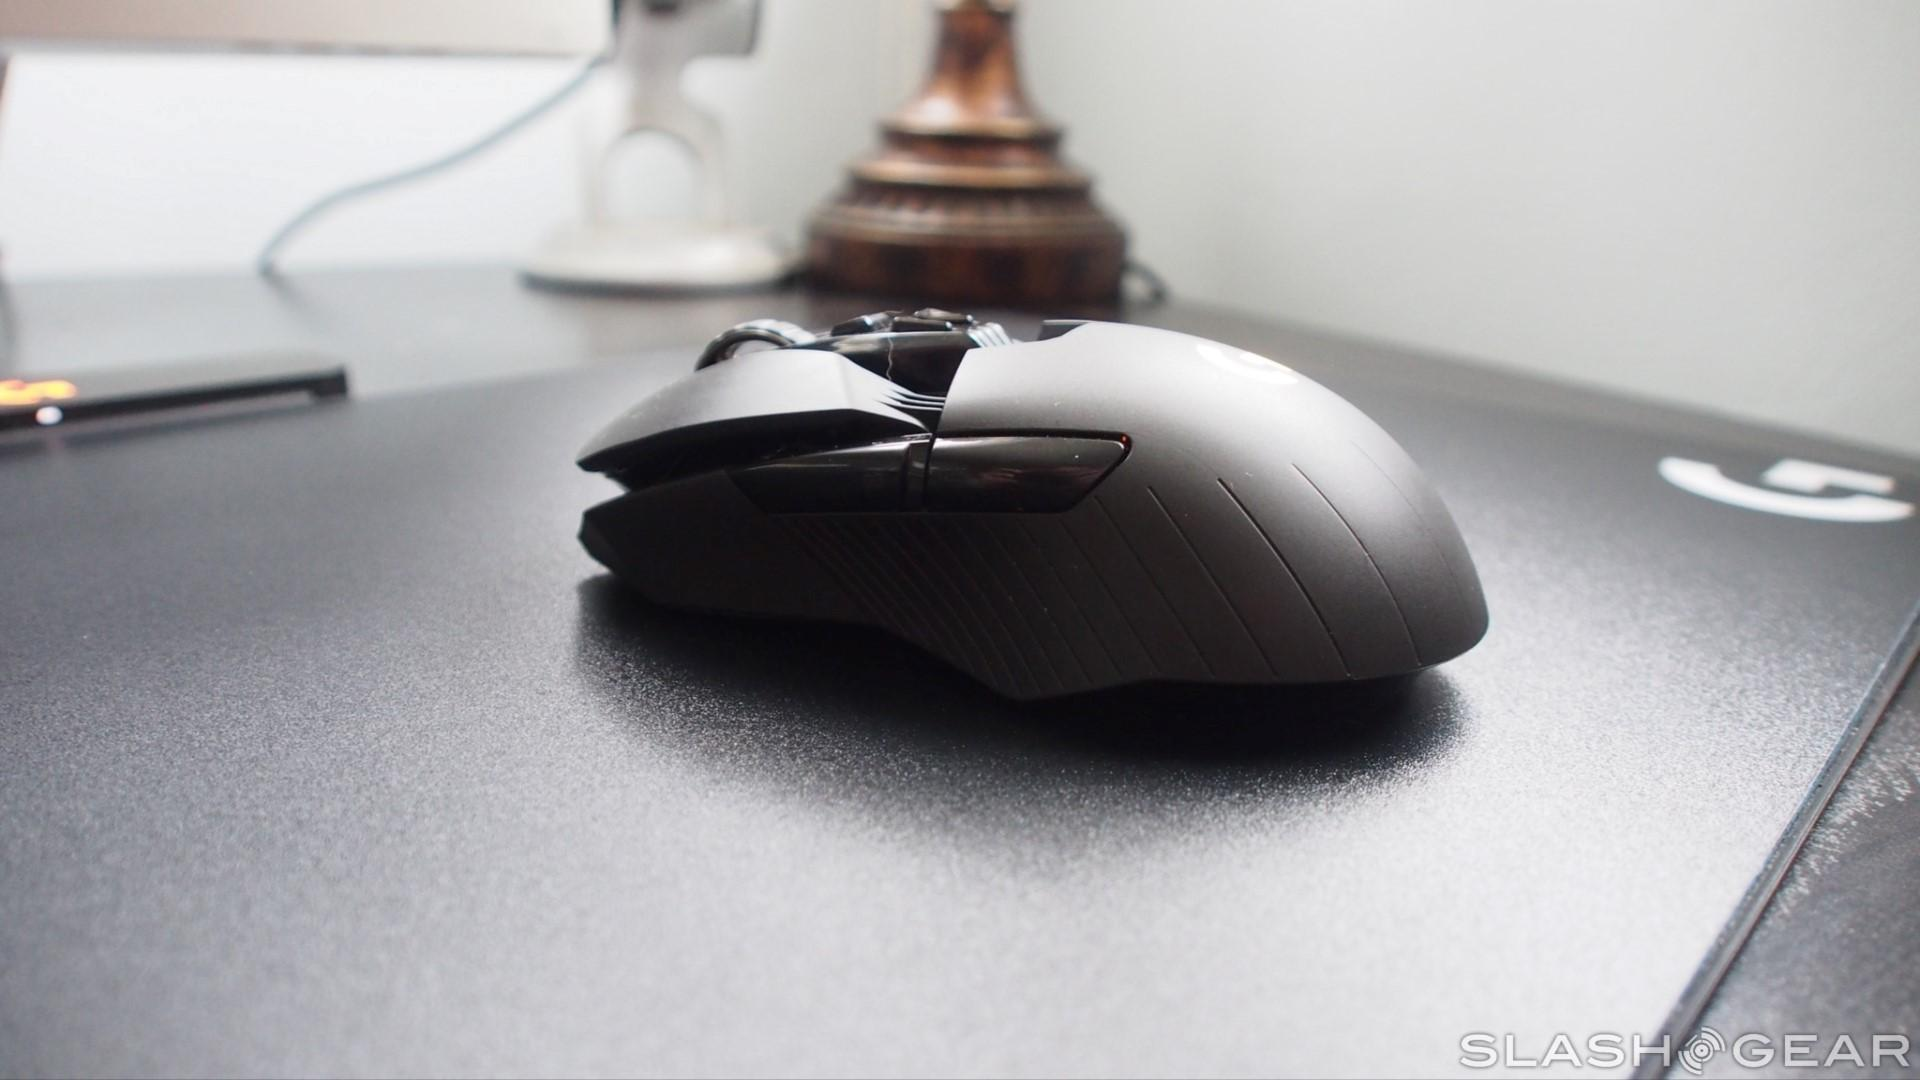 c0fbac170d5 The wireless charging mat that sits beneath the mousepad itself is packed  with charging coils that will keep your mouse topped up as you use it.